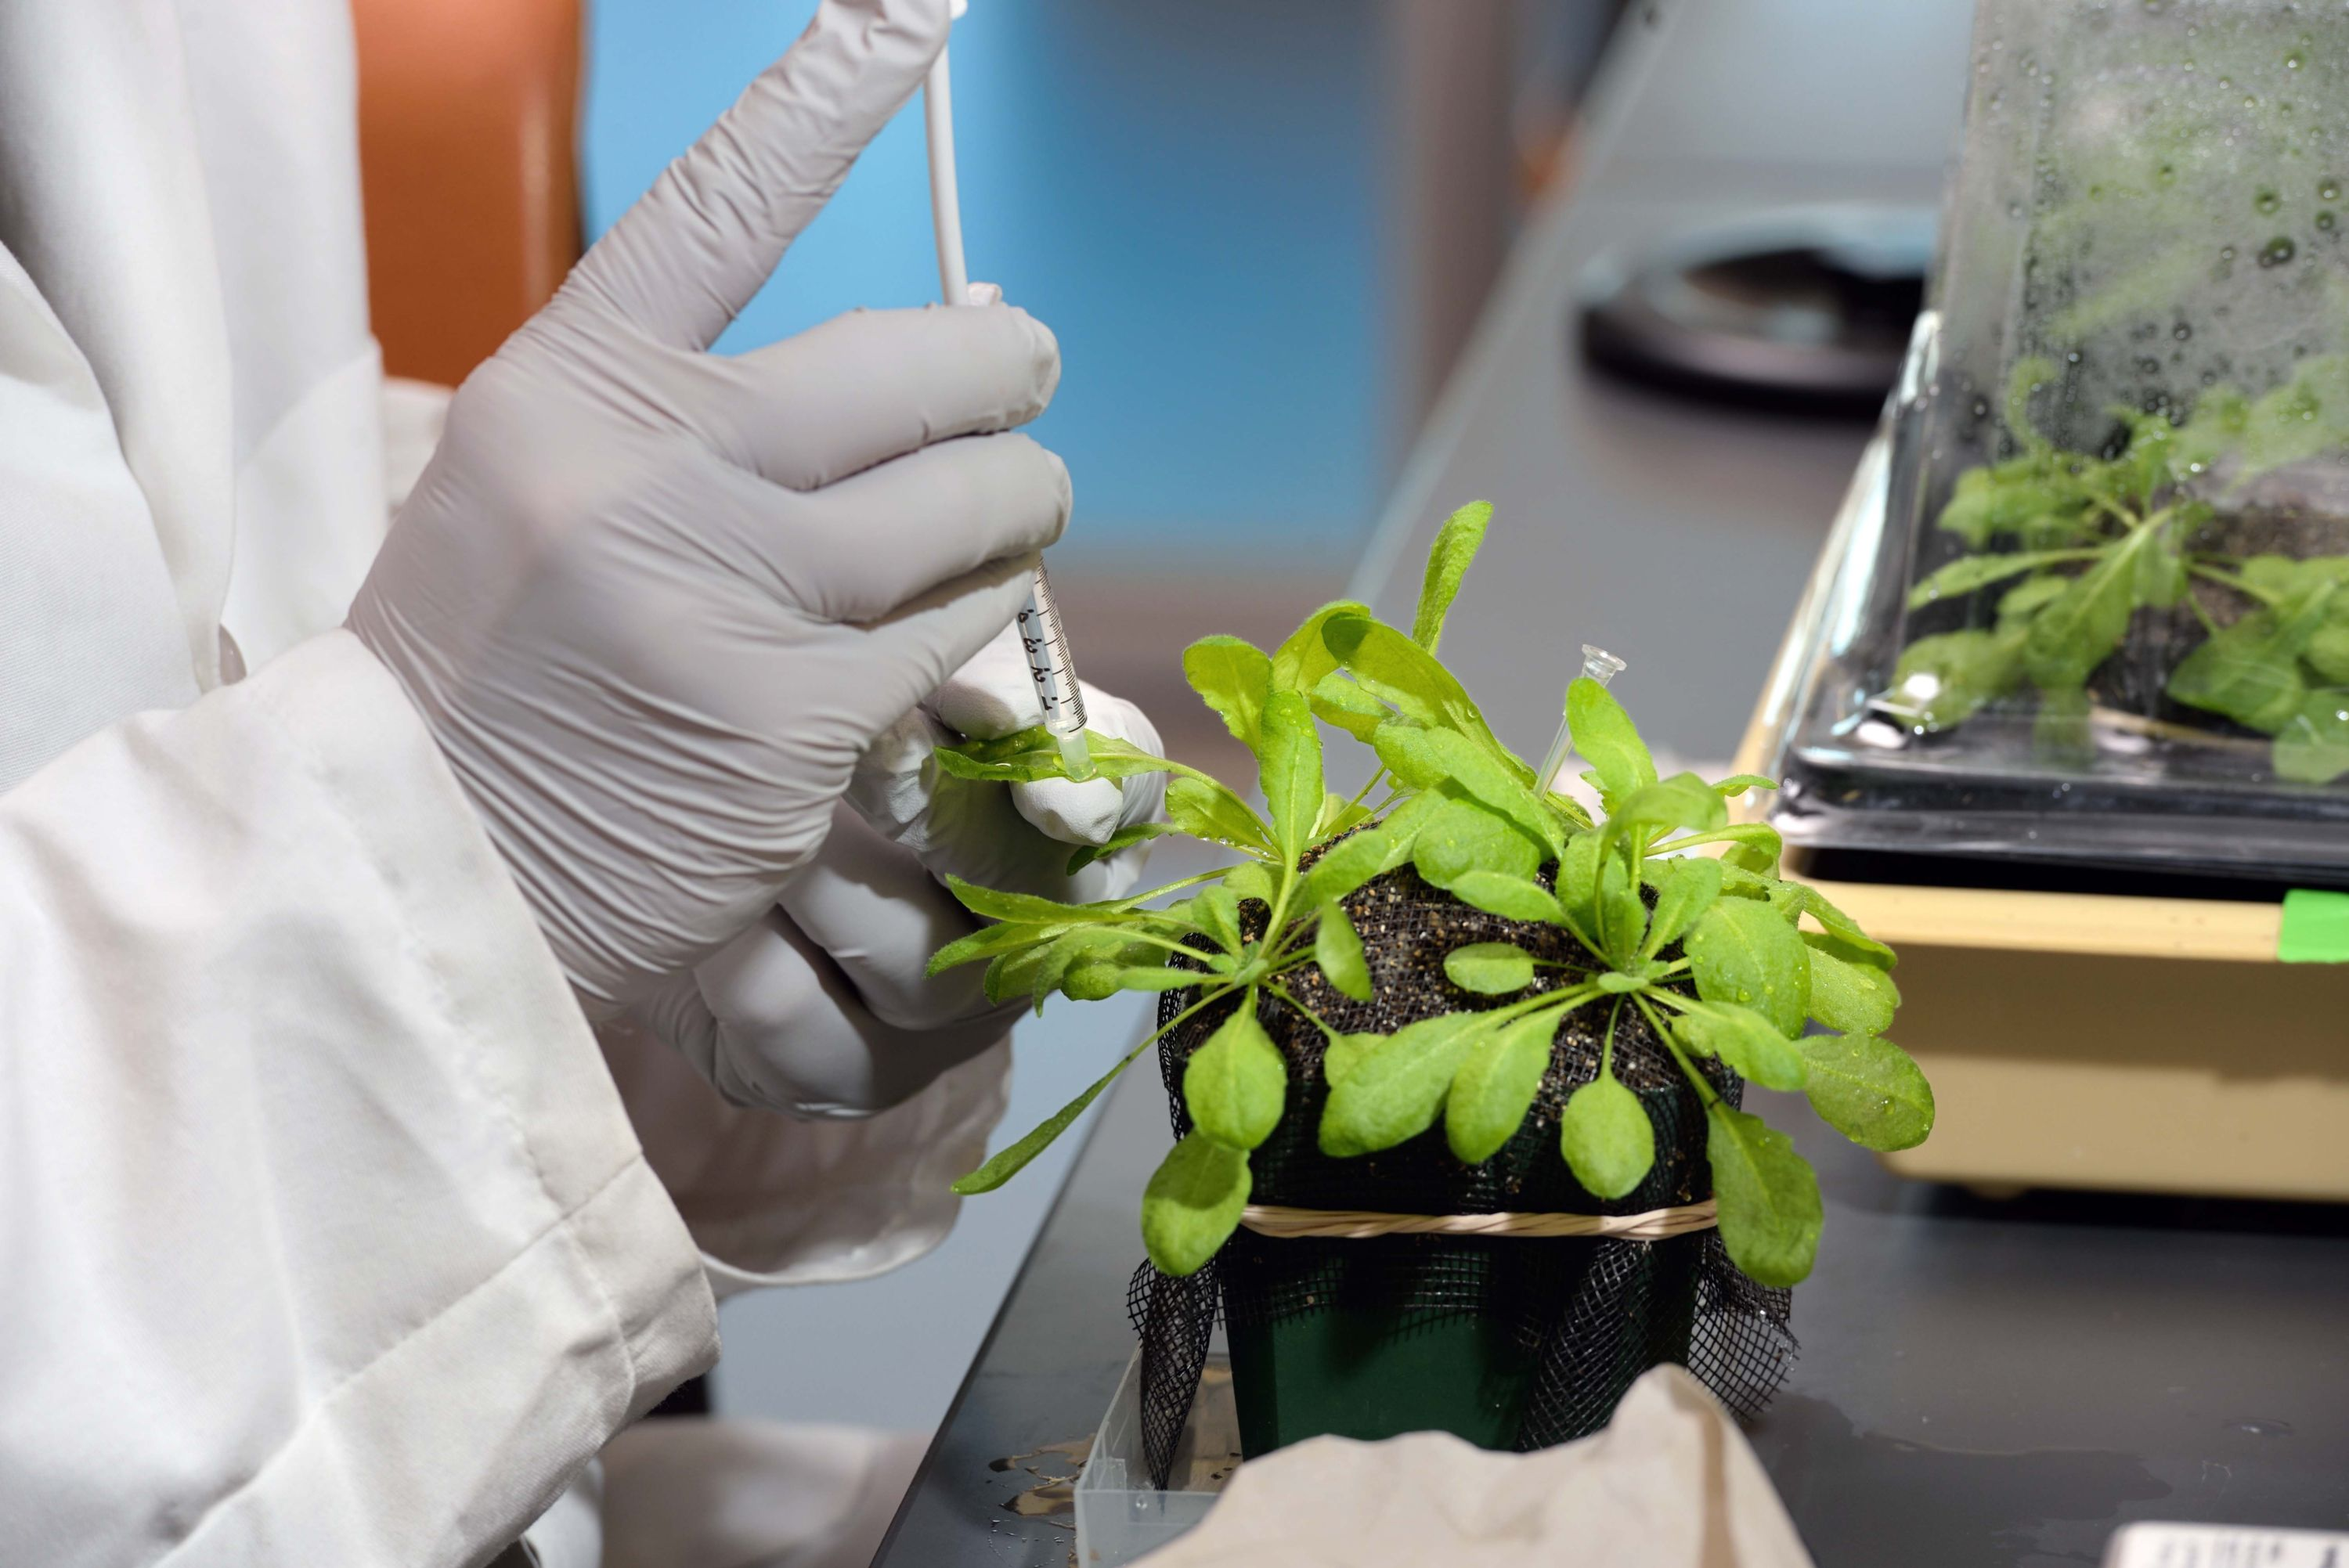 A scientist working with an Arabidopsis plant in the lab.